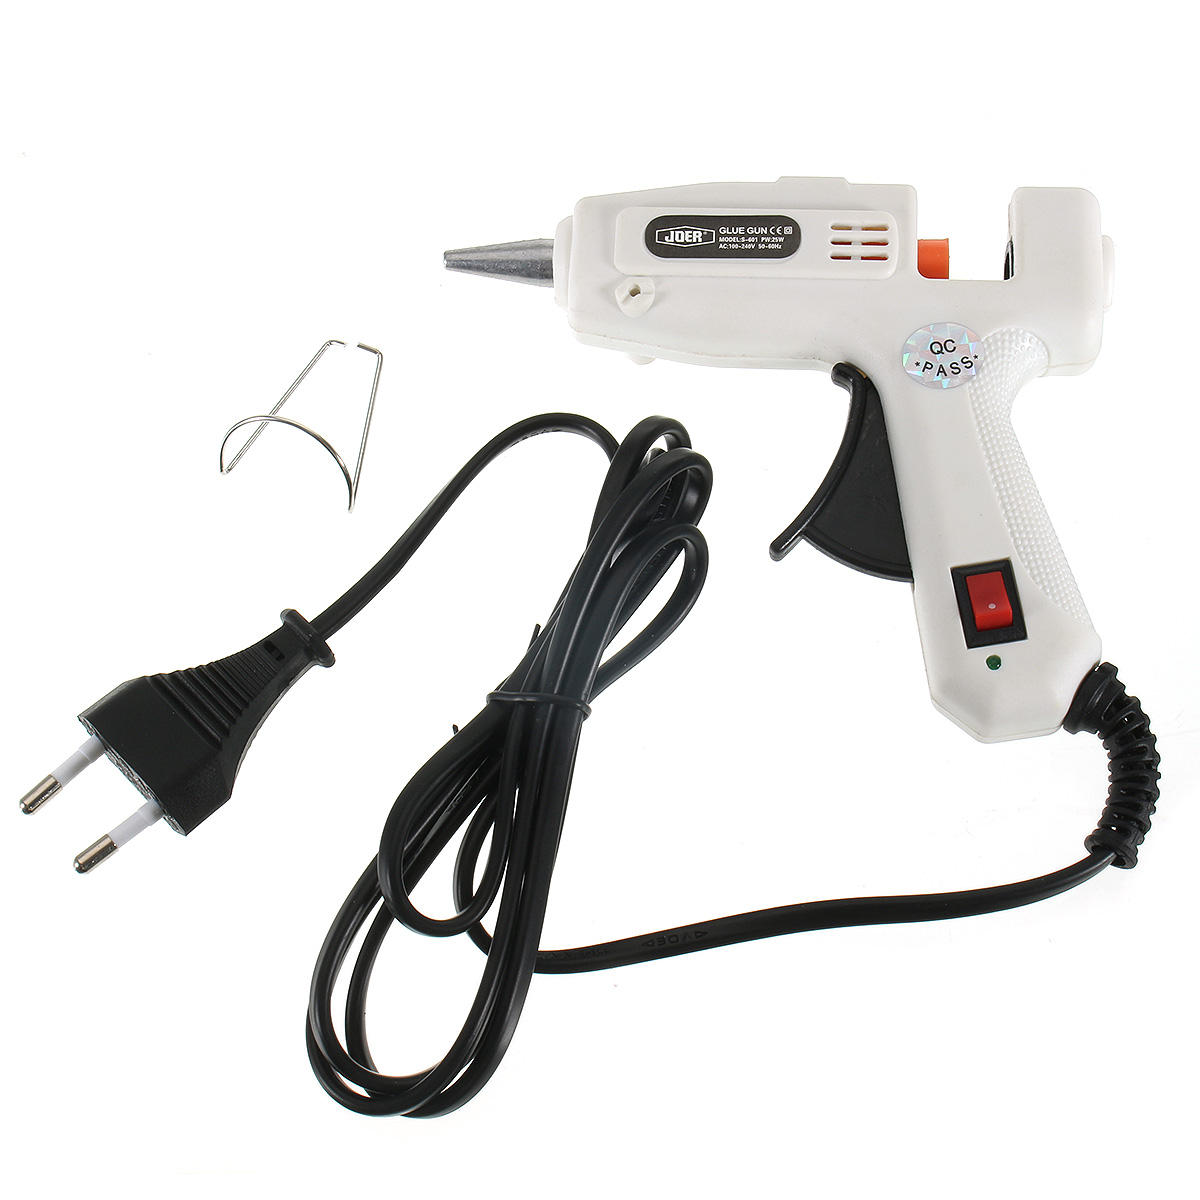 25W Hot Melt Air Glue Gun de alta temperatura Calentador Mini Repair Heat herramienta con 50 piezas de barras de pegamento